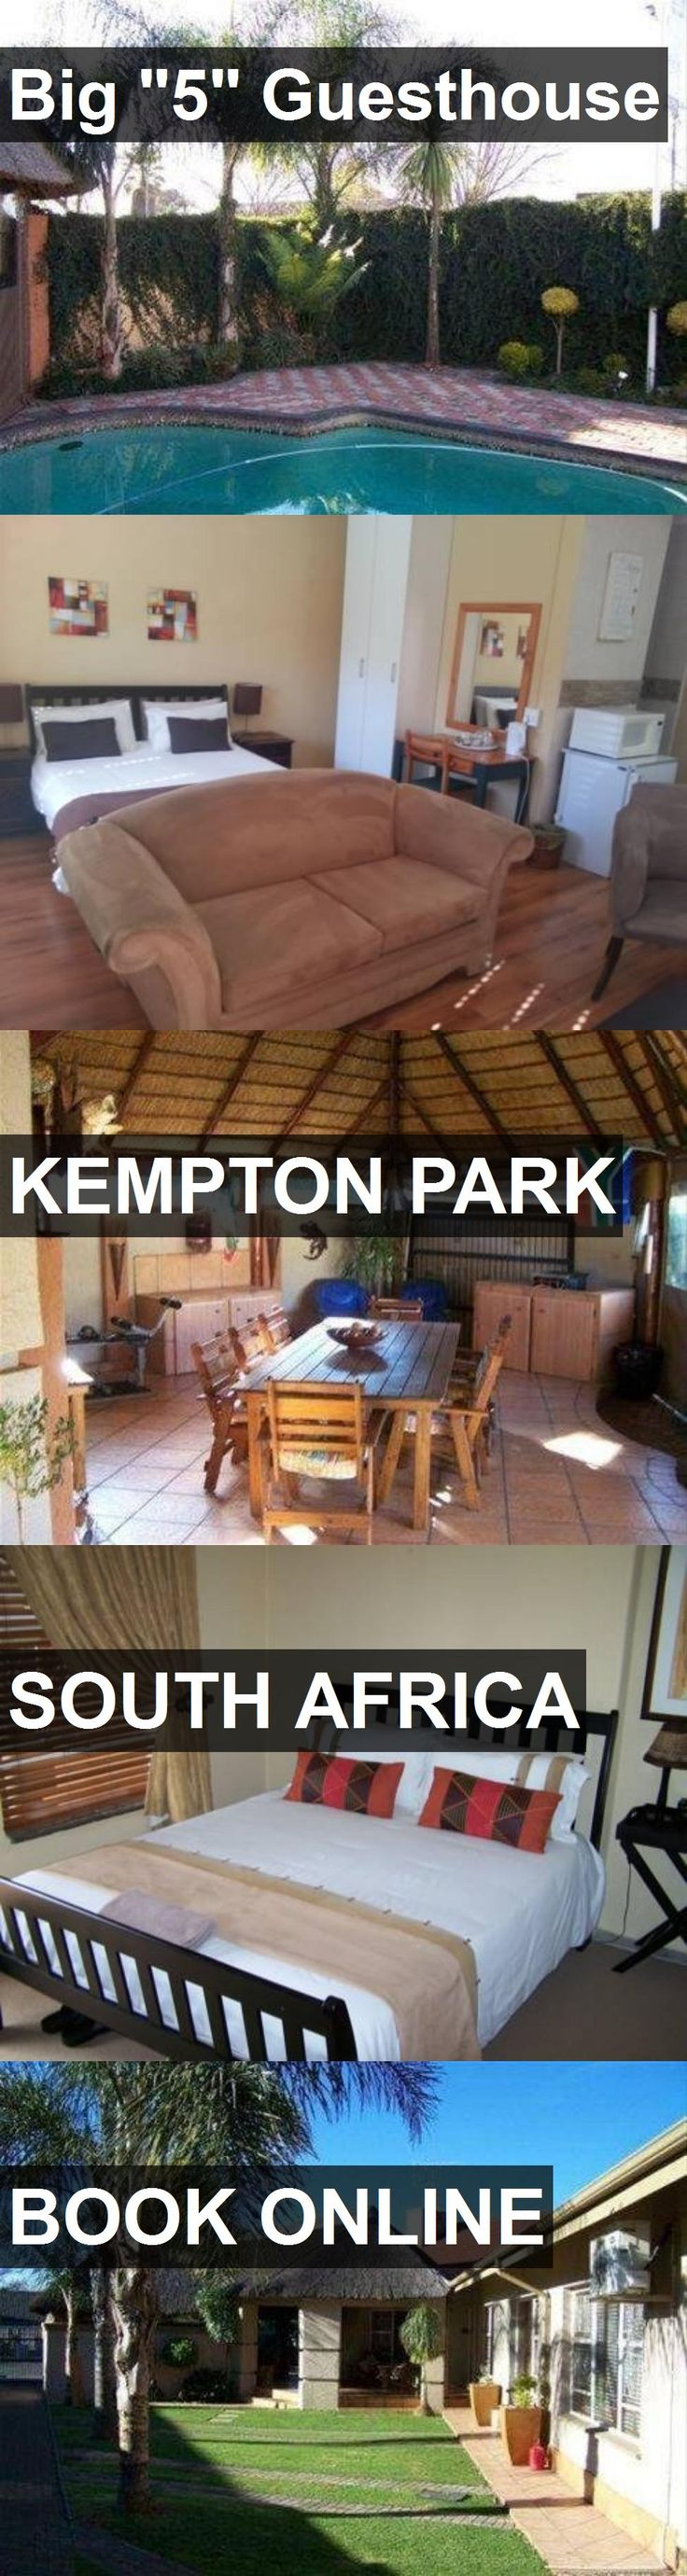 "Hotel Big ""5"" Guesthouse in Kempton Park, South Africa. For more information, photos, reviews and best prices please follow the link. #SouthAfrica #KemptonPark #Big""5""Guesthouse #hotel #travel #vacation"